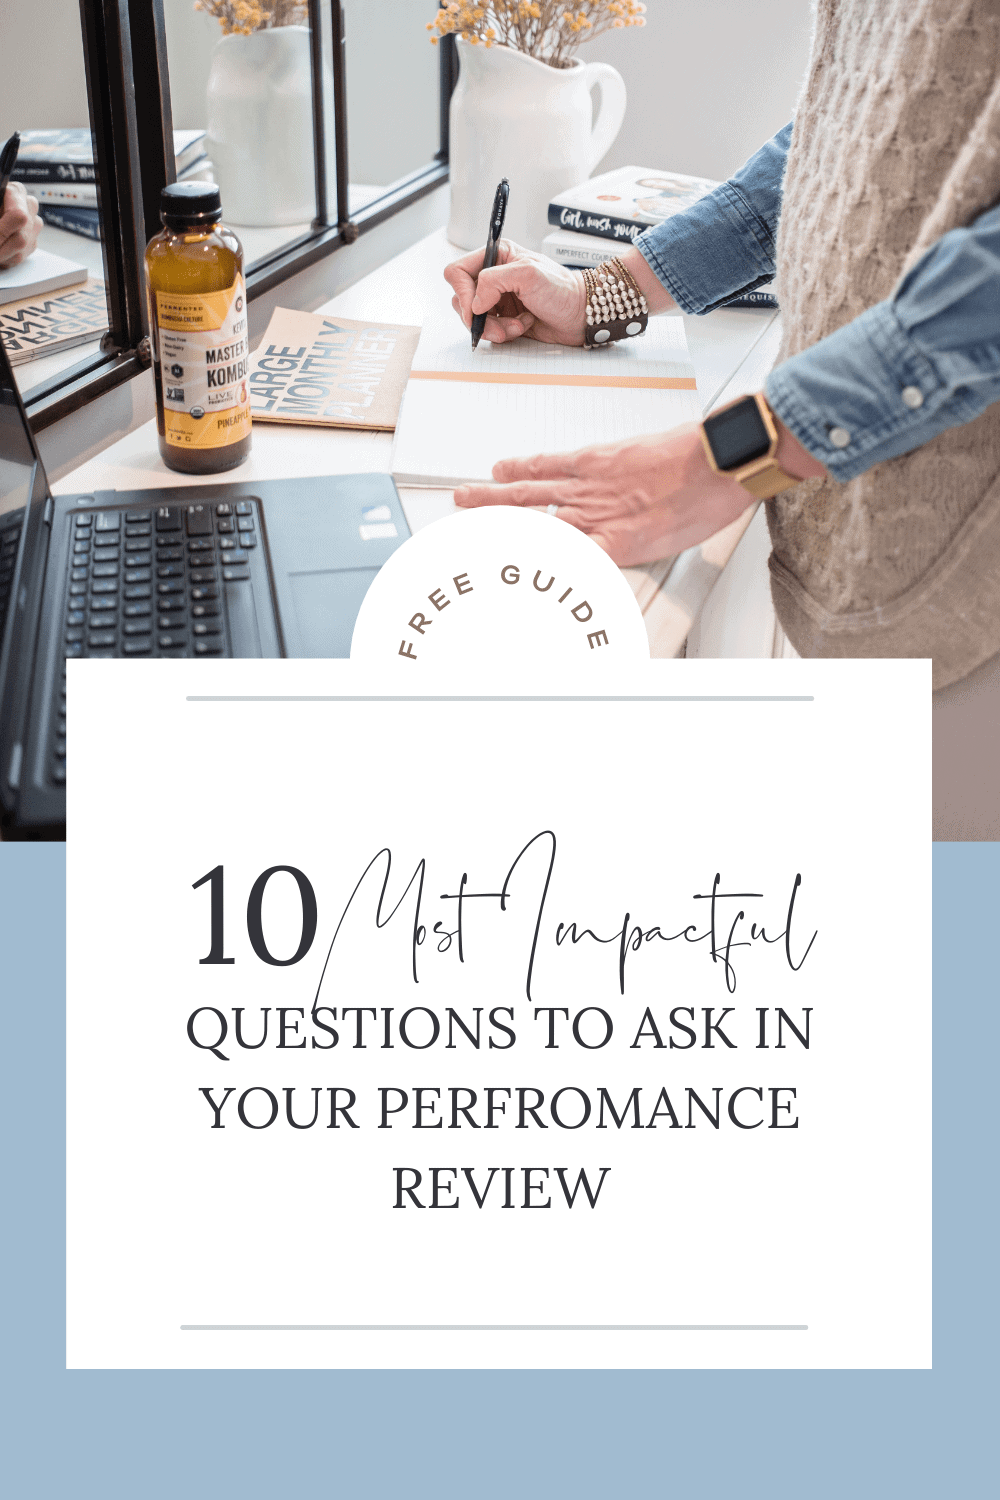 10 Most Impactful Questions to Ask In Your Performance Review cover image